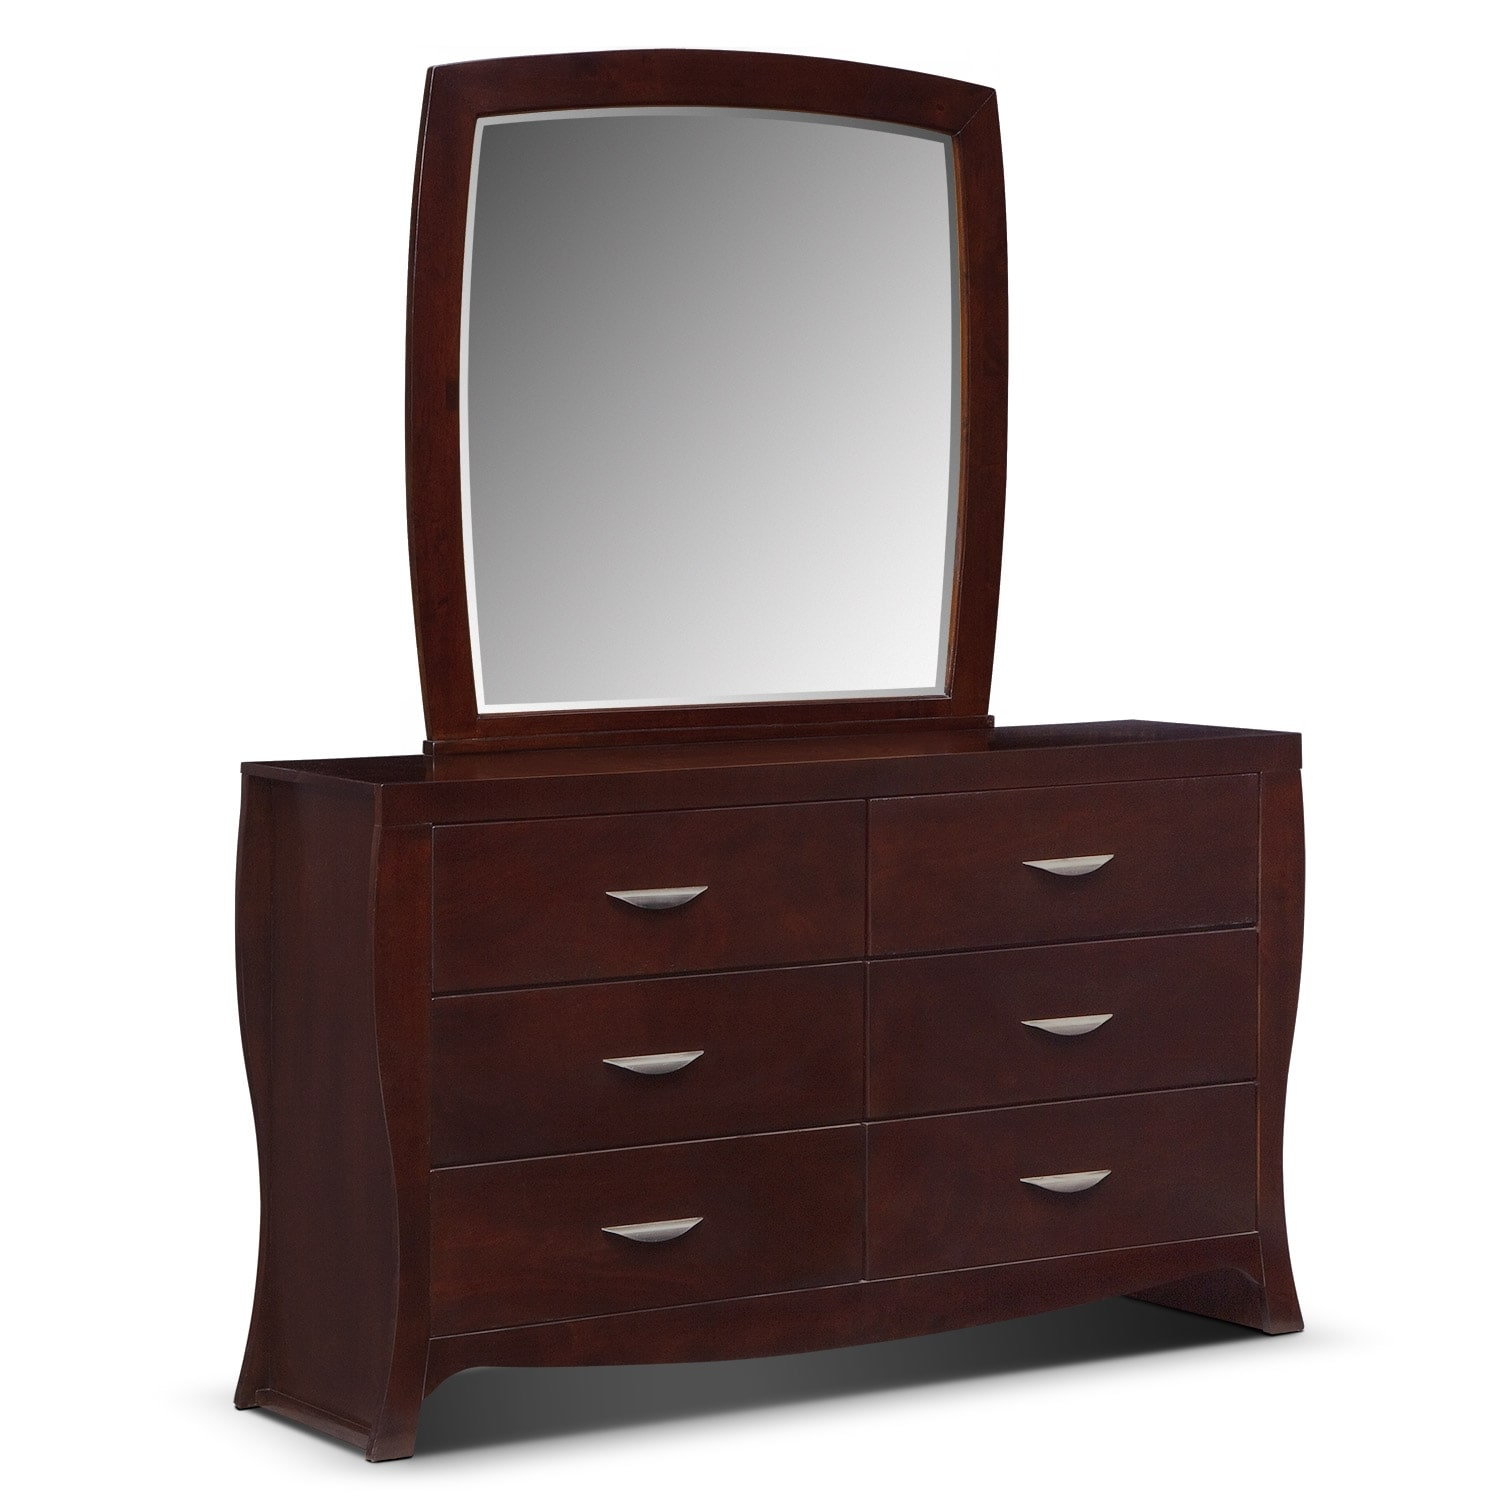 Bedroom Furniture - Jaden Dresser and Mirror - Merlot